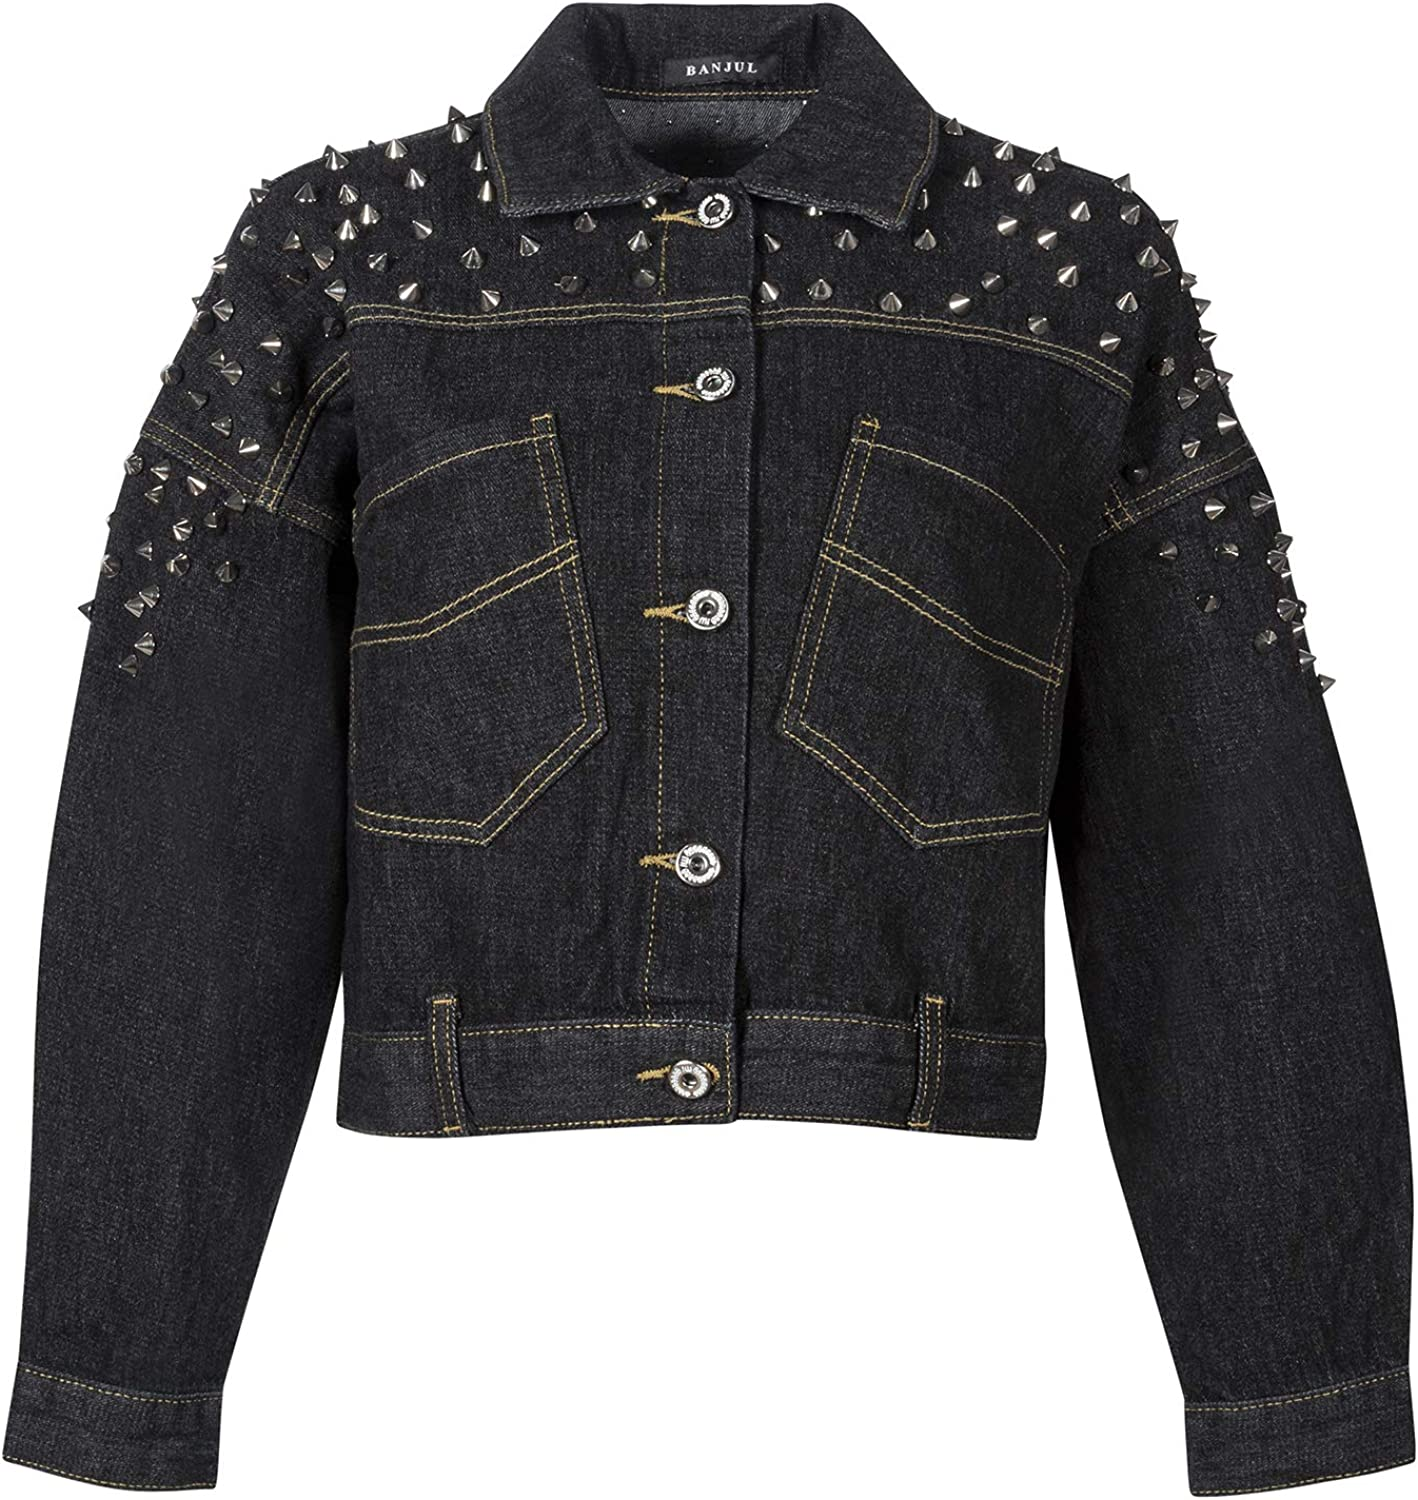 Womens Cropped Length Studded Black Denim Jean Jacket with Spike Studs